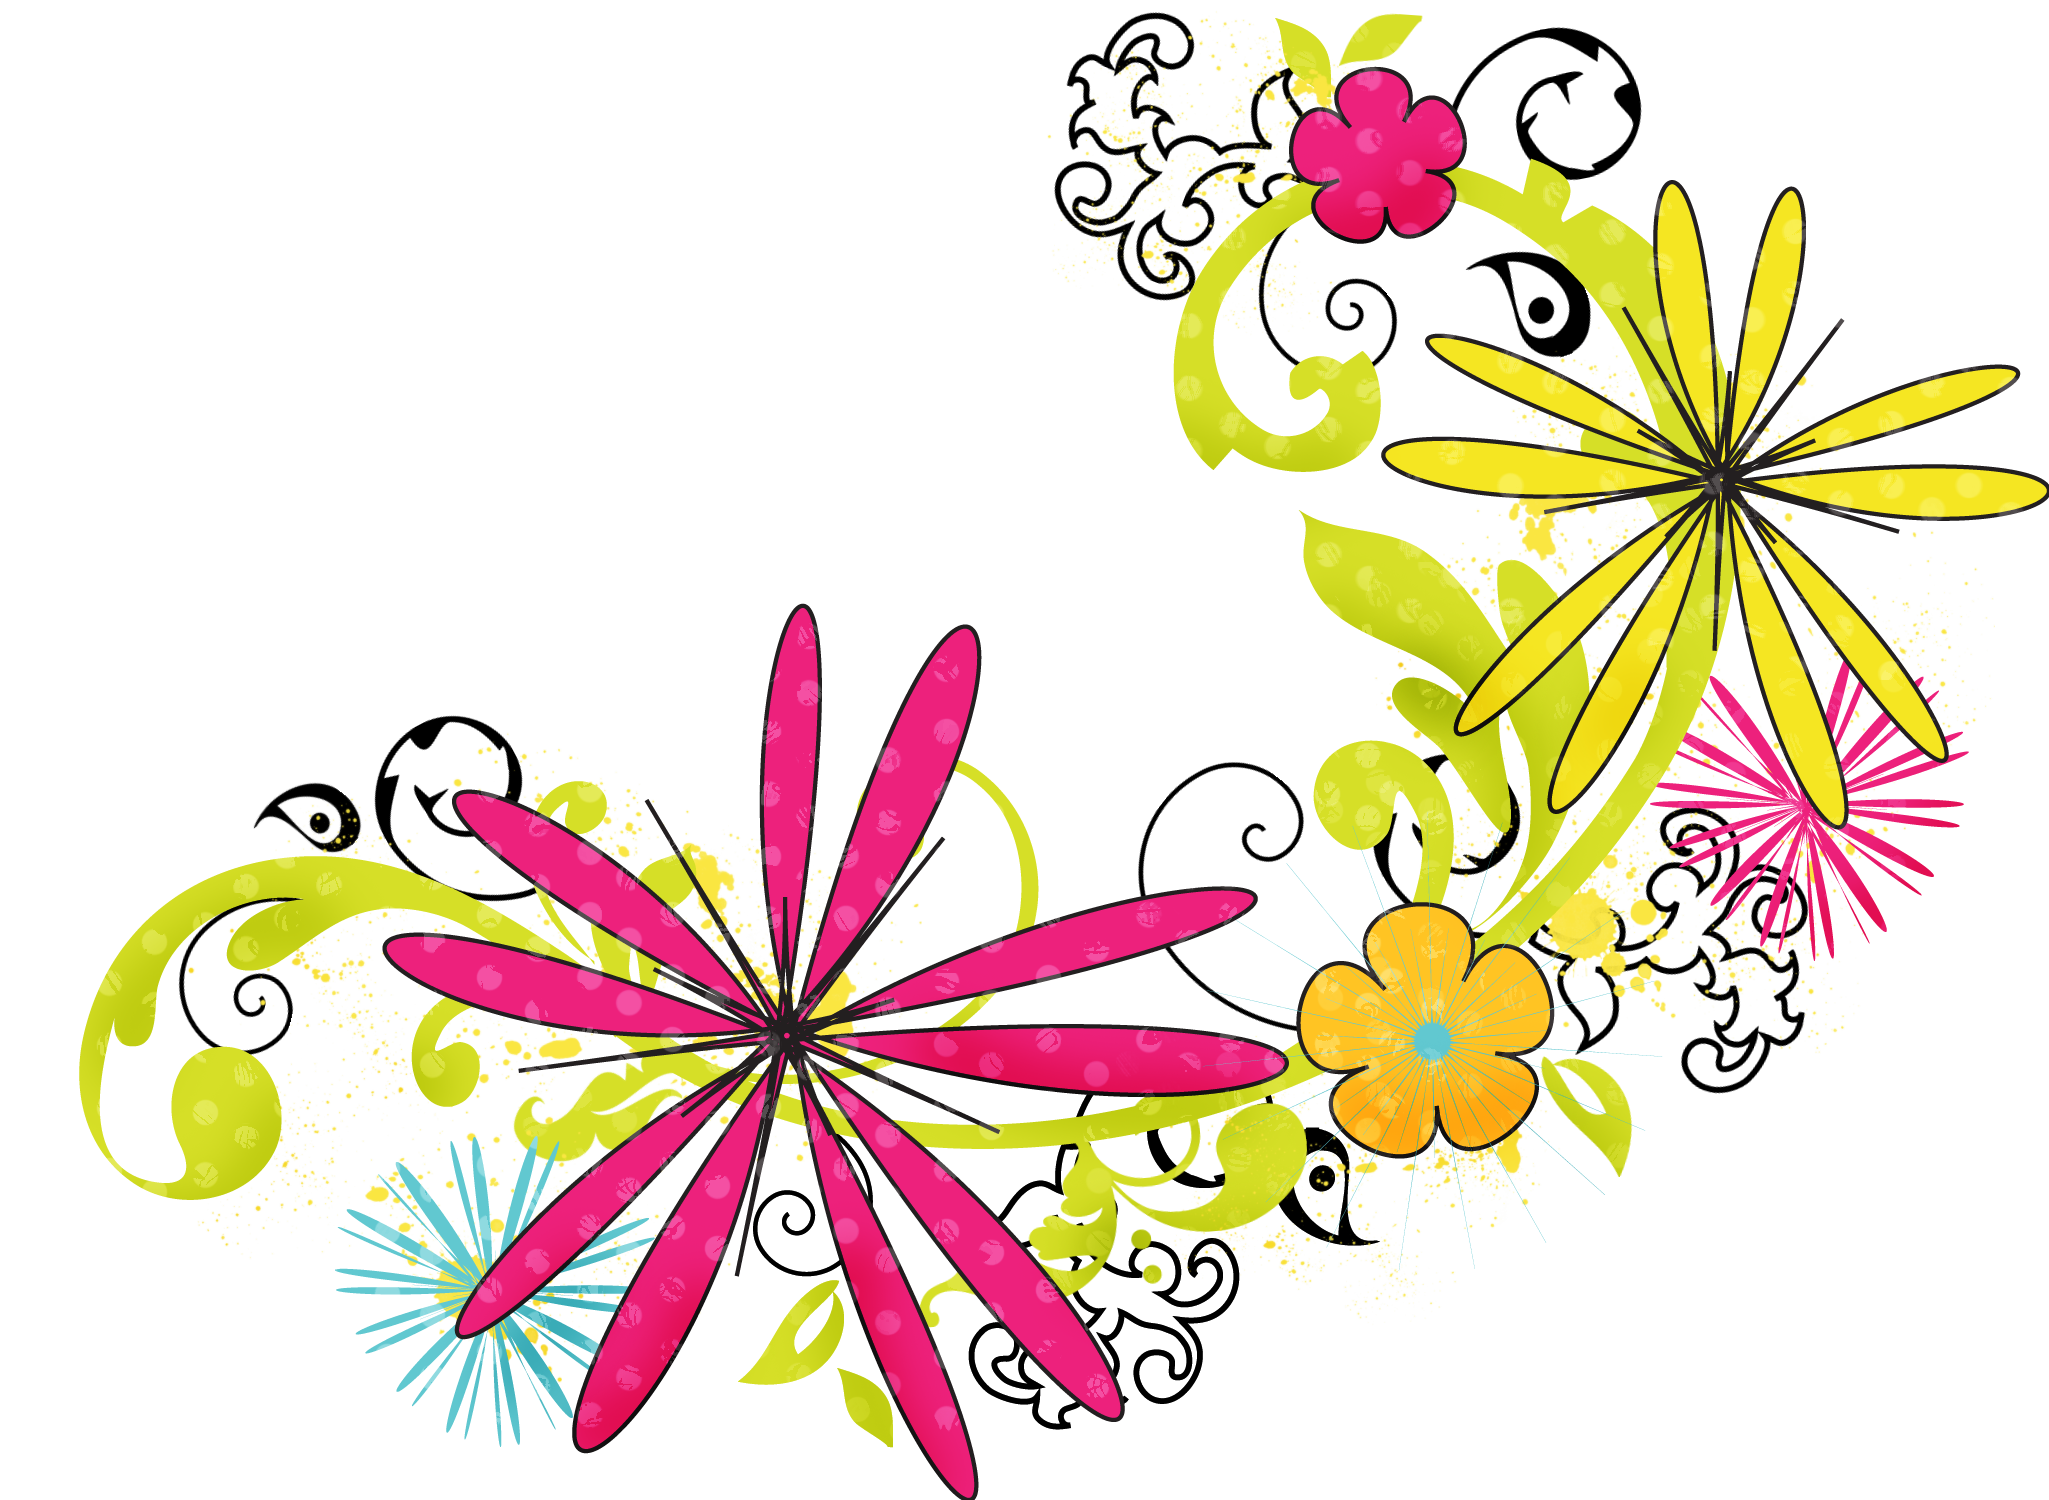 Download PNG image - Floral Png Hd - Floral PNG HD